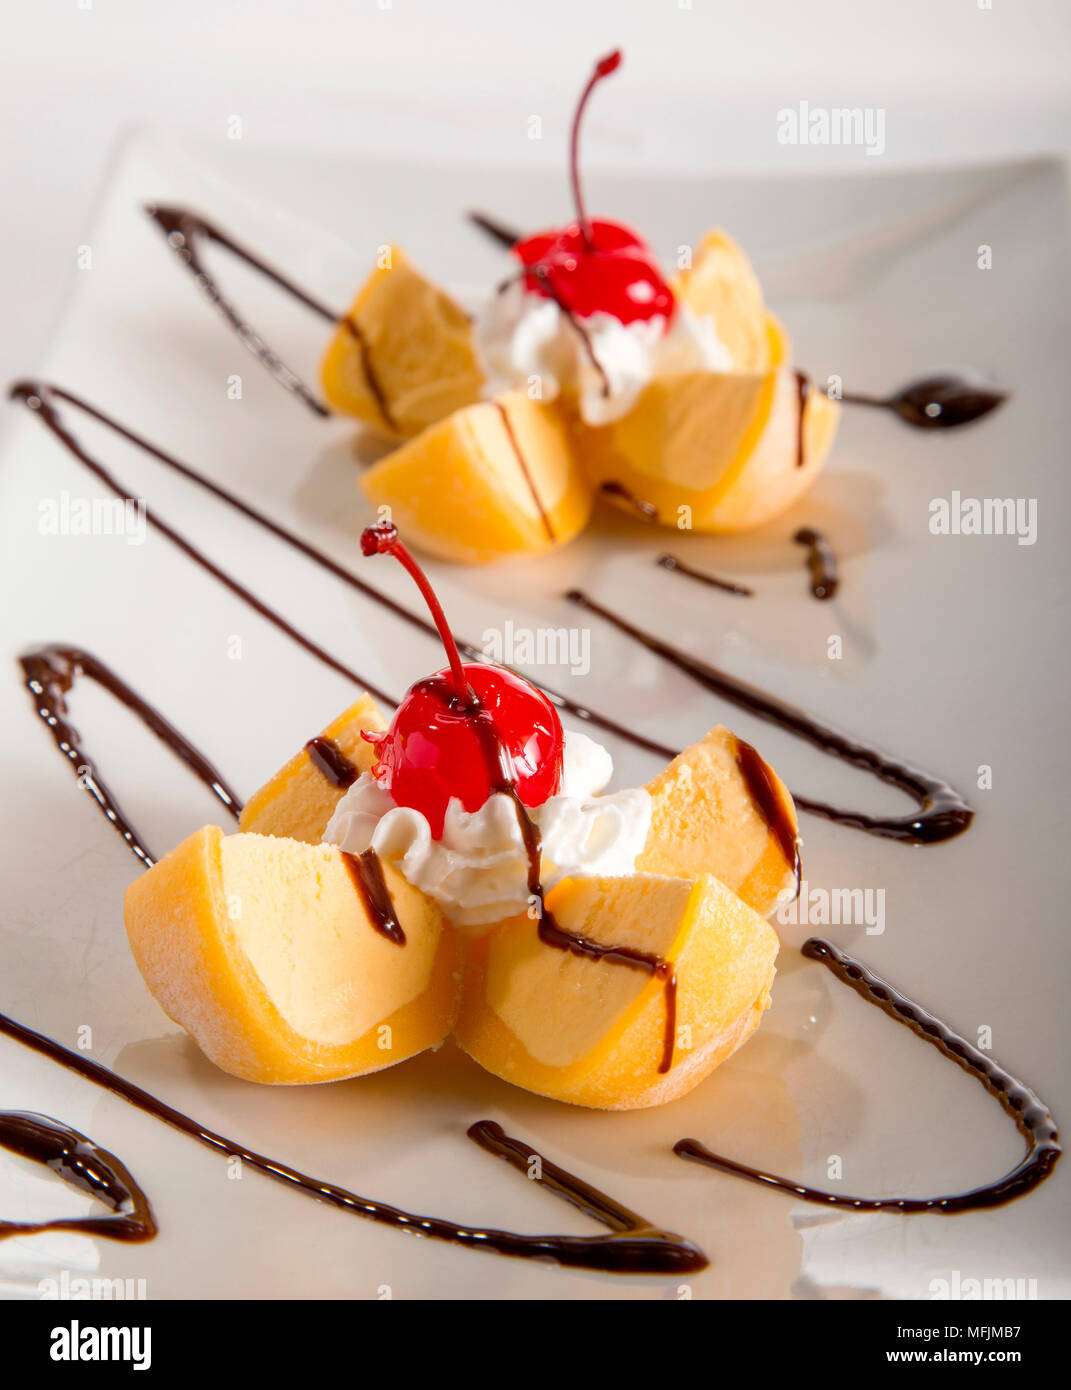 A plate with two servings of Mango Mochi ice cream topped with whip cream and cherries. - Stock Image